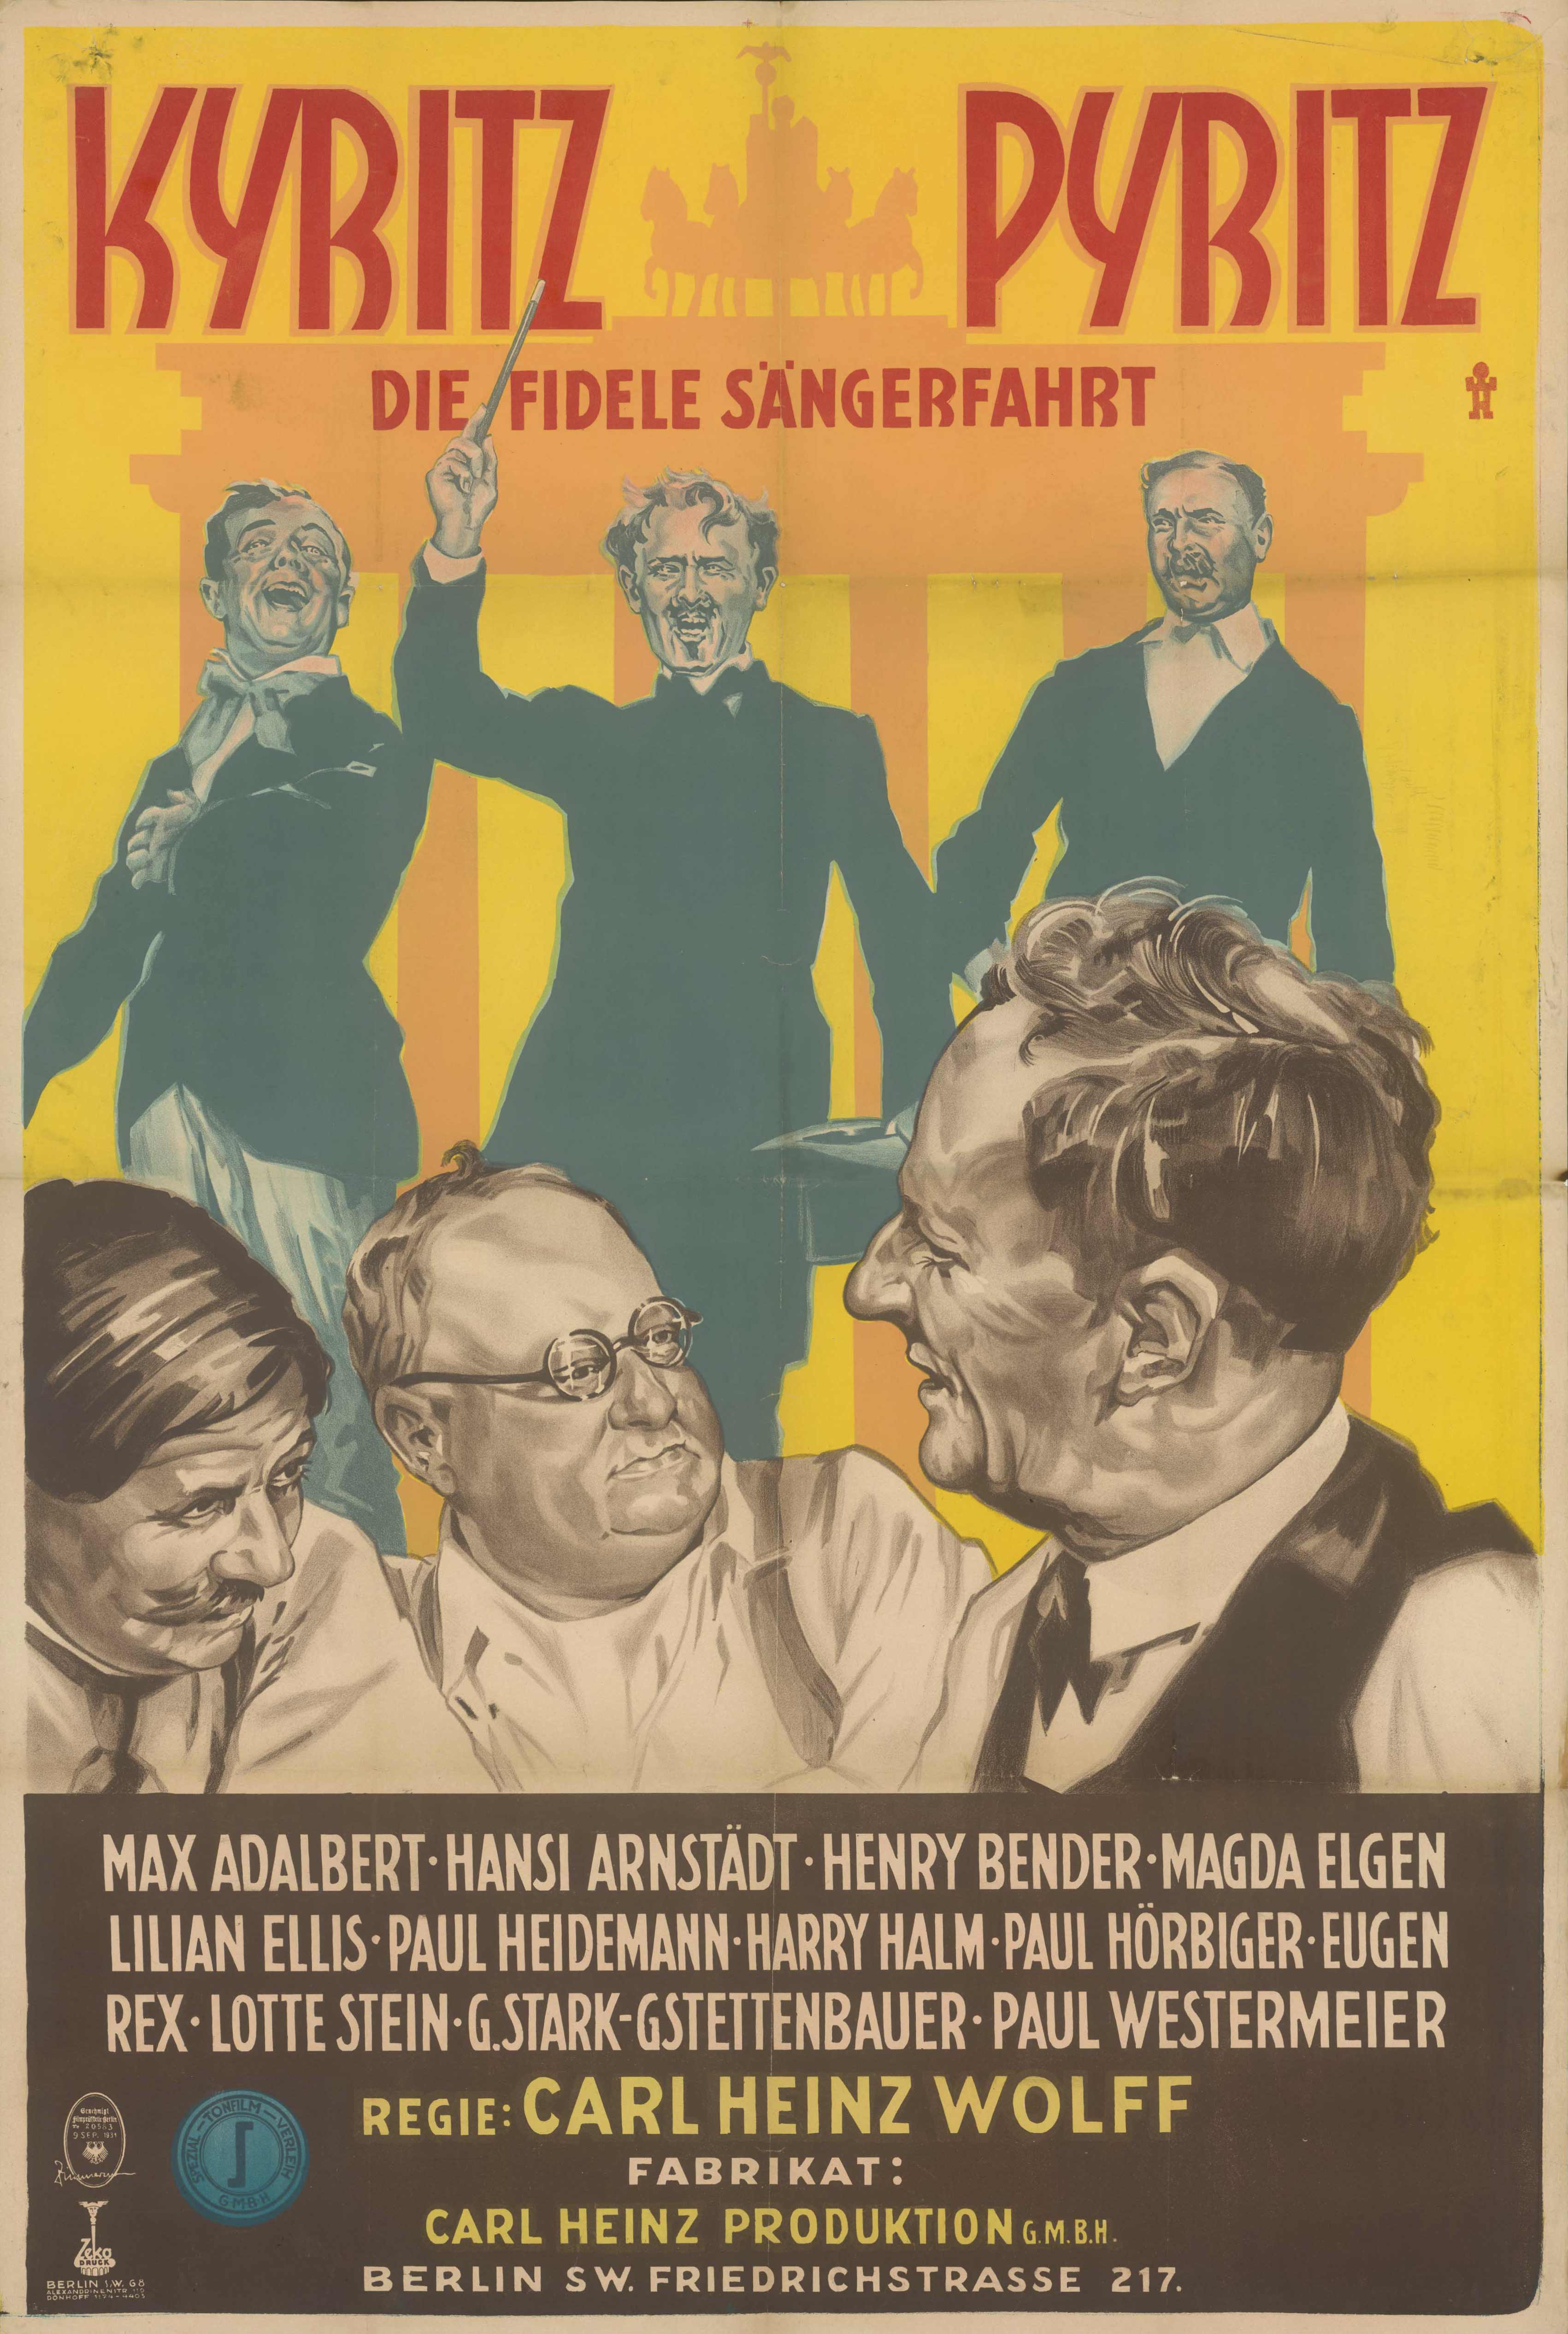 Film poster for Kyritz – Pyritz, Germany 1931